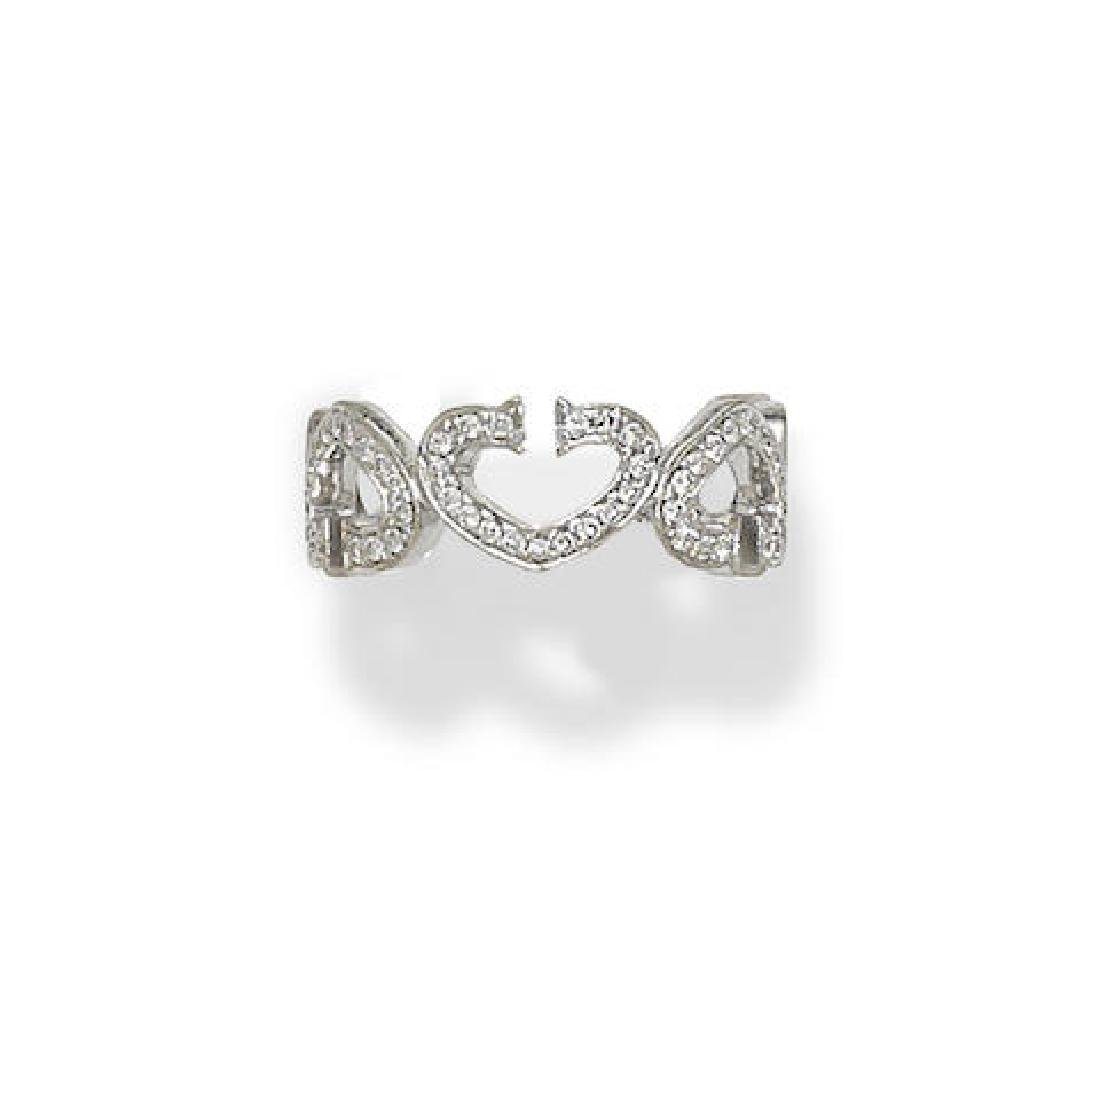 A DIAMOND AND 18K WHITE GOLD 'DOUBLE C' BAND, Cartier